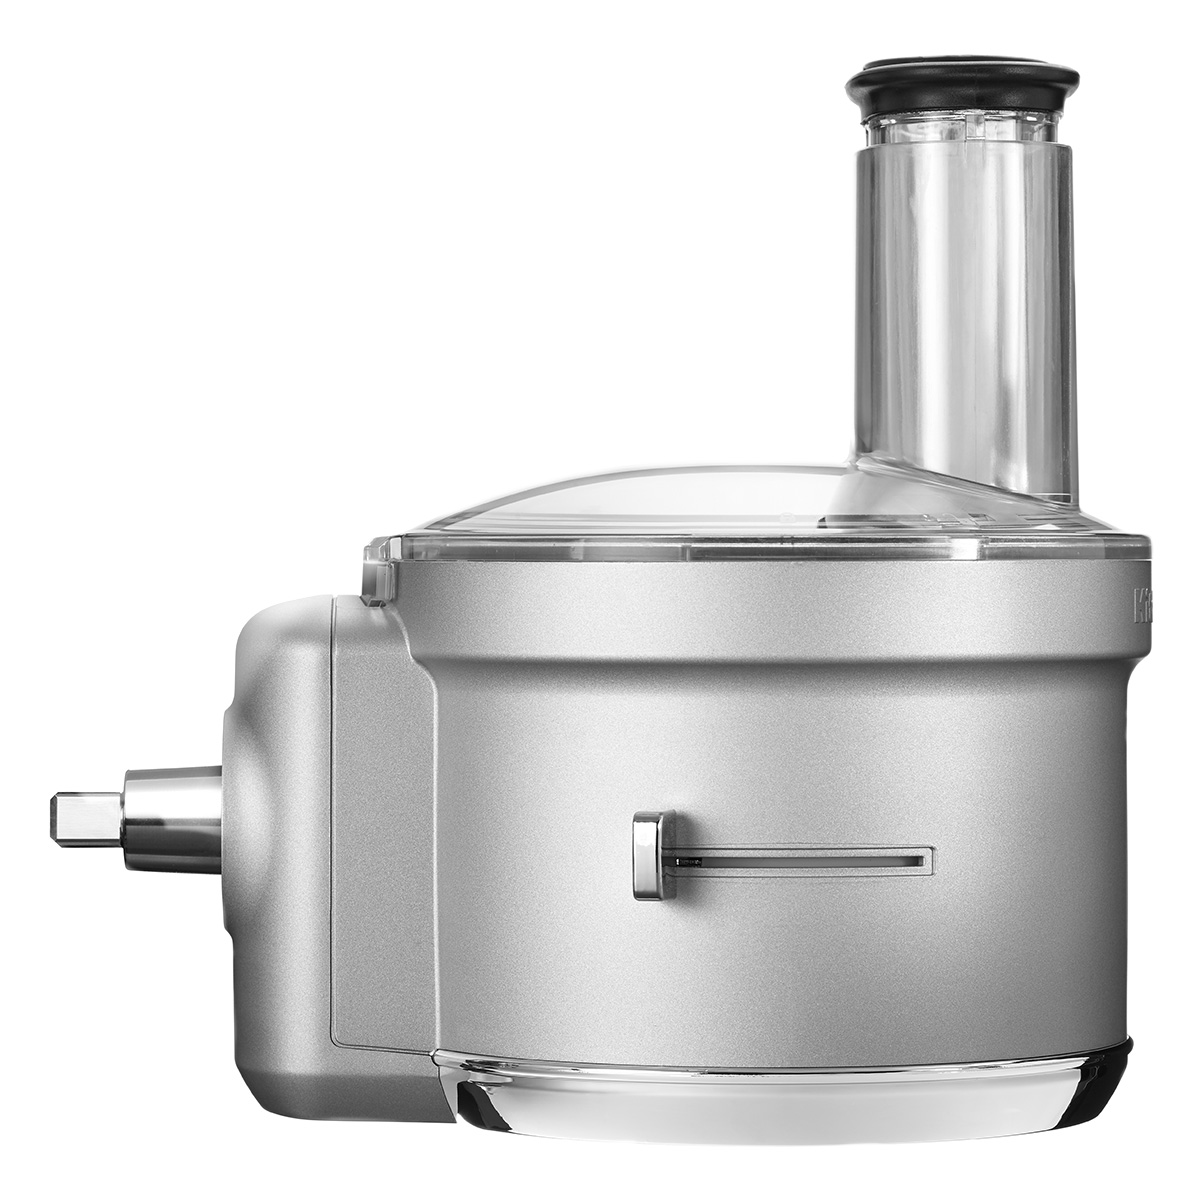 Image of   KitchenAid foodprocessor - Hvid